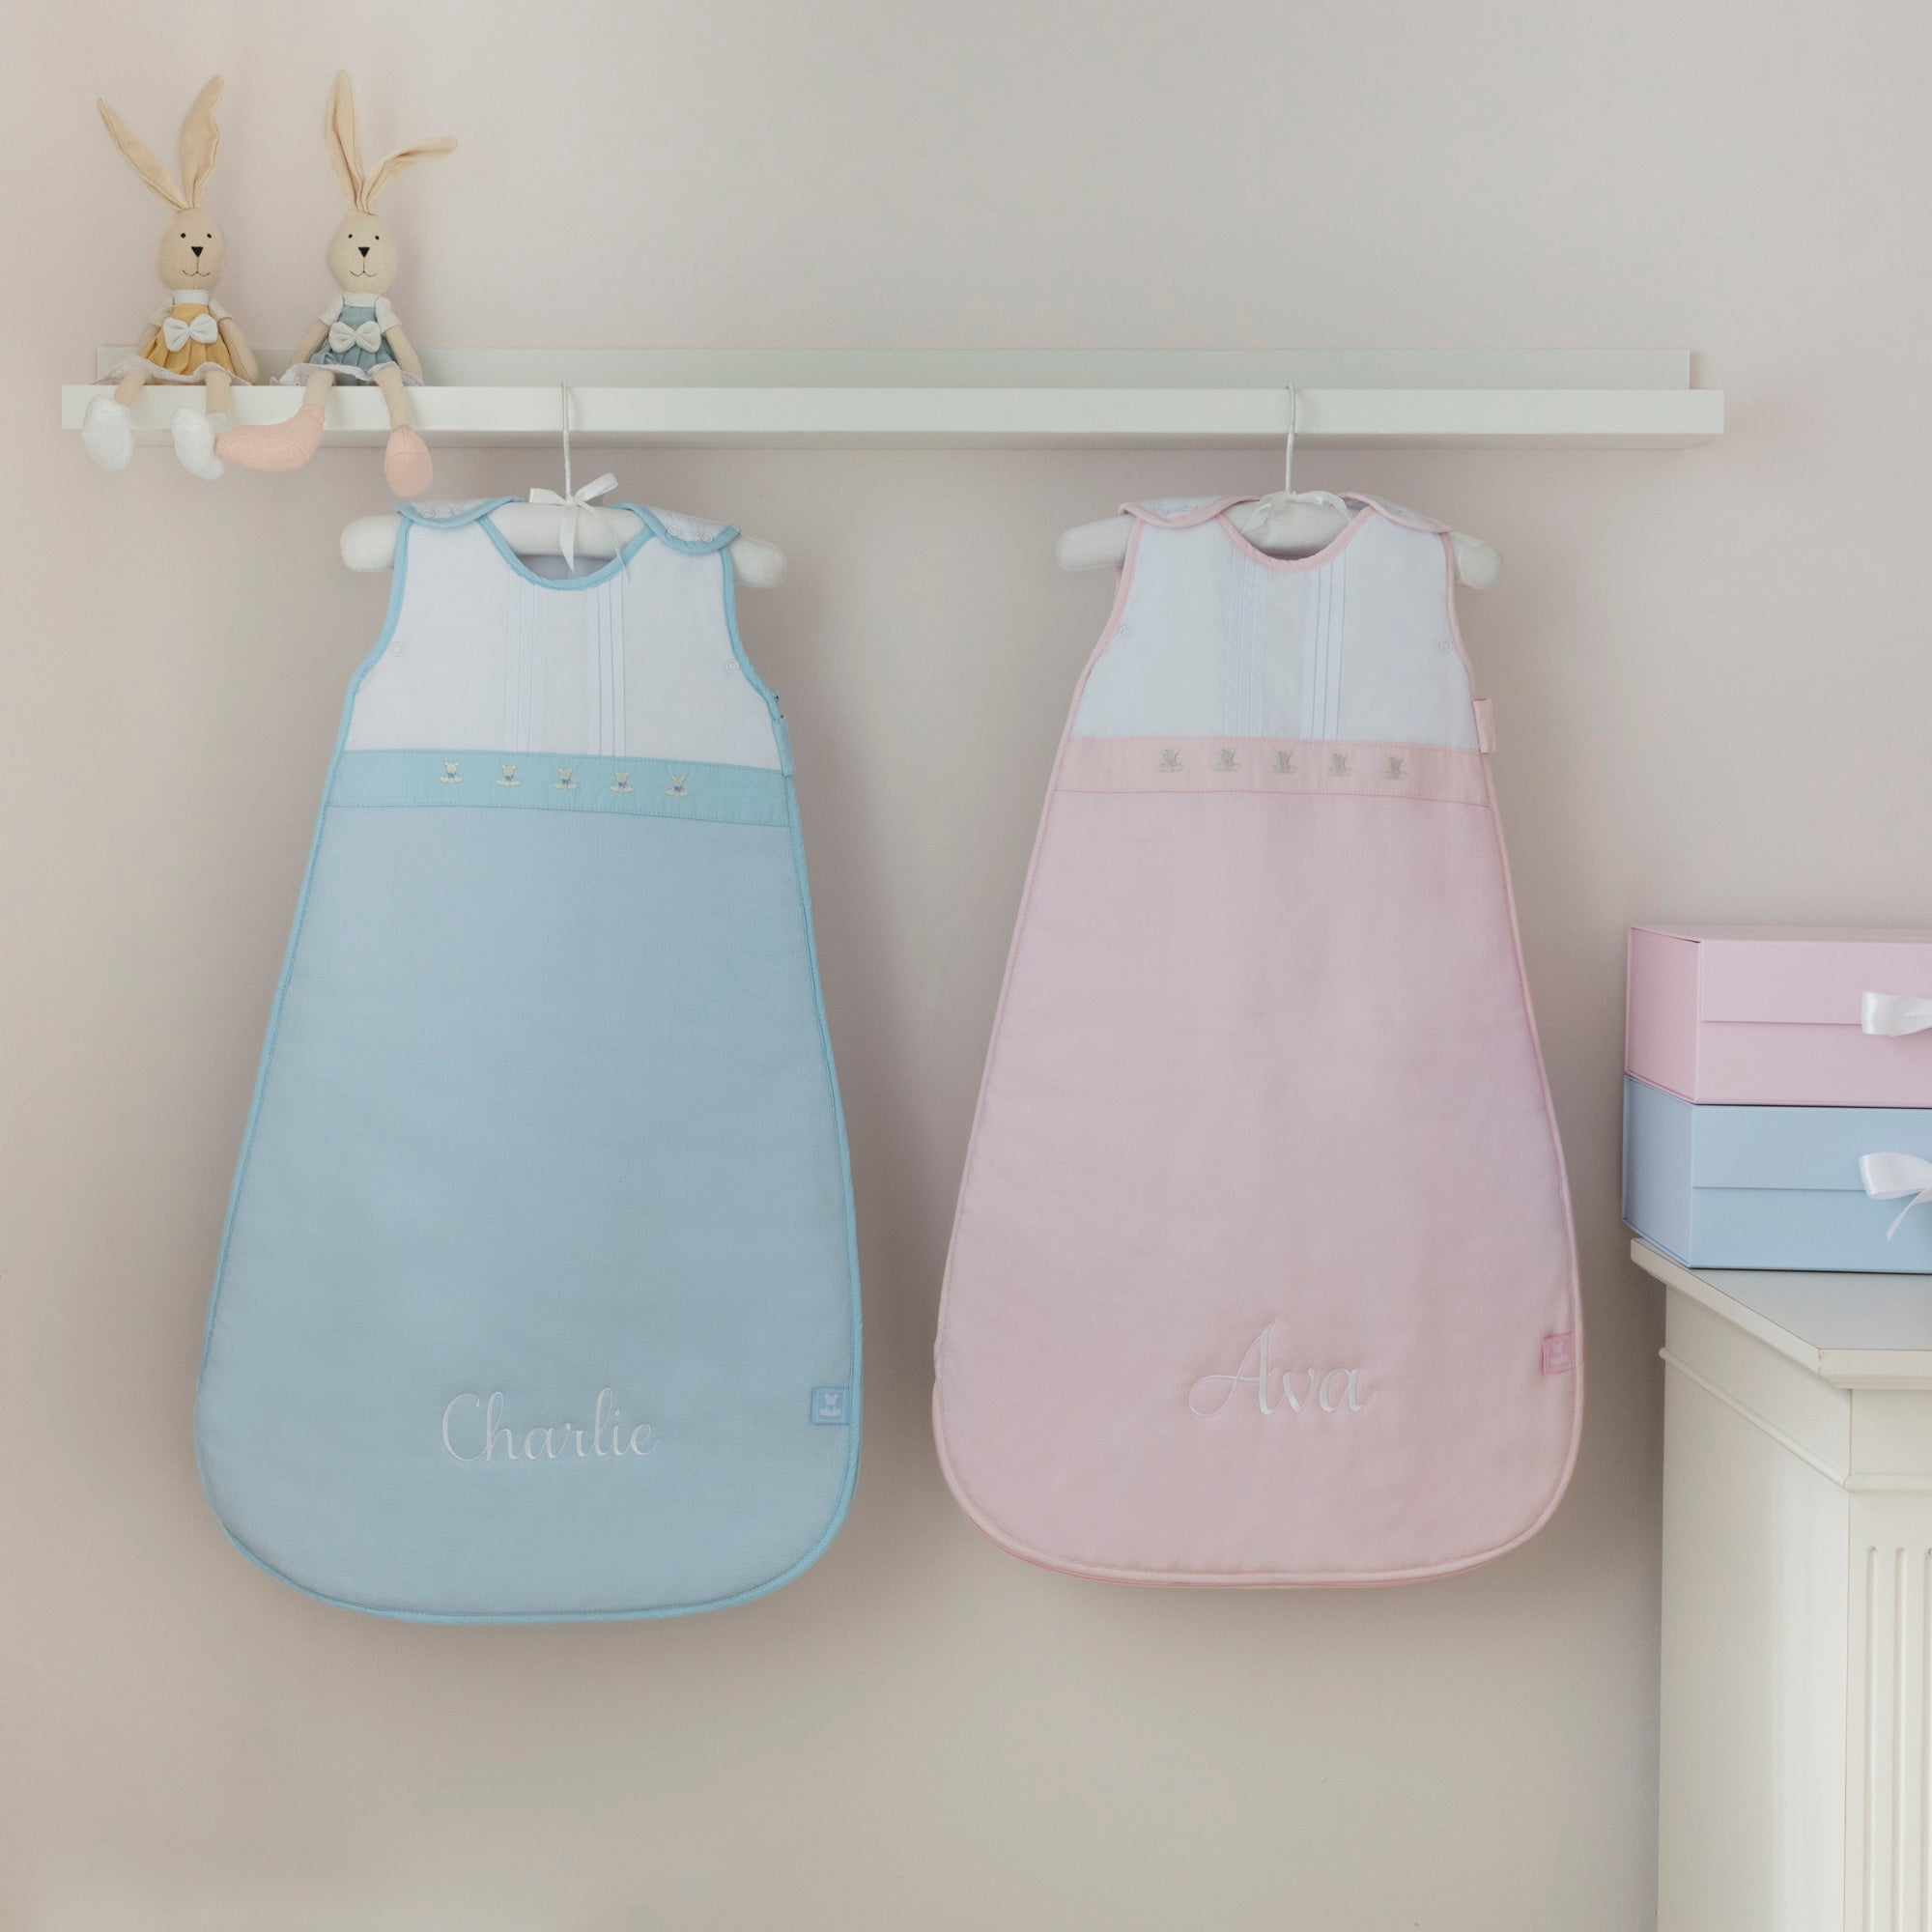 Signature Sleeping Bags for Twins